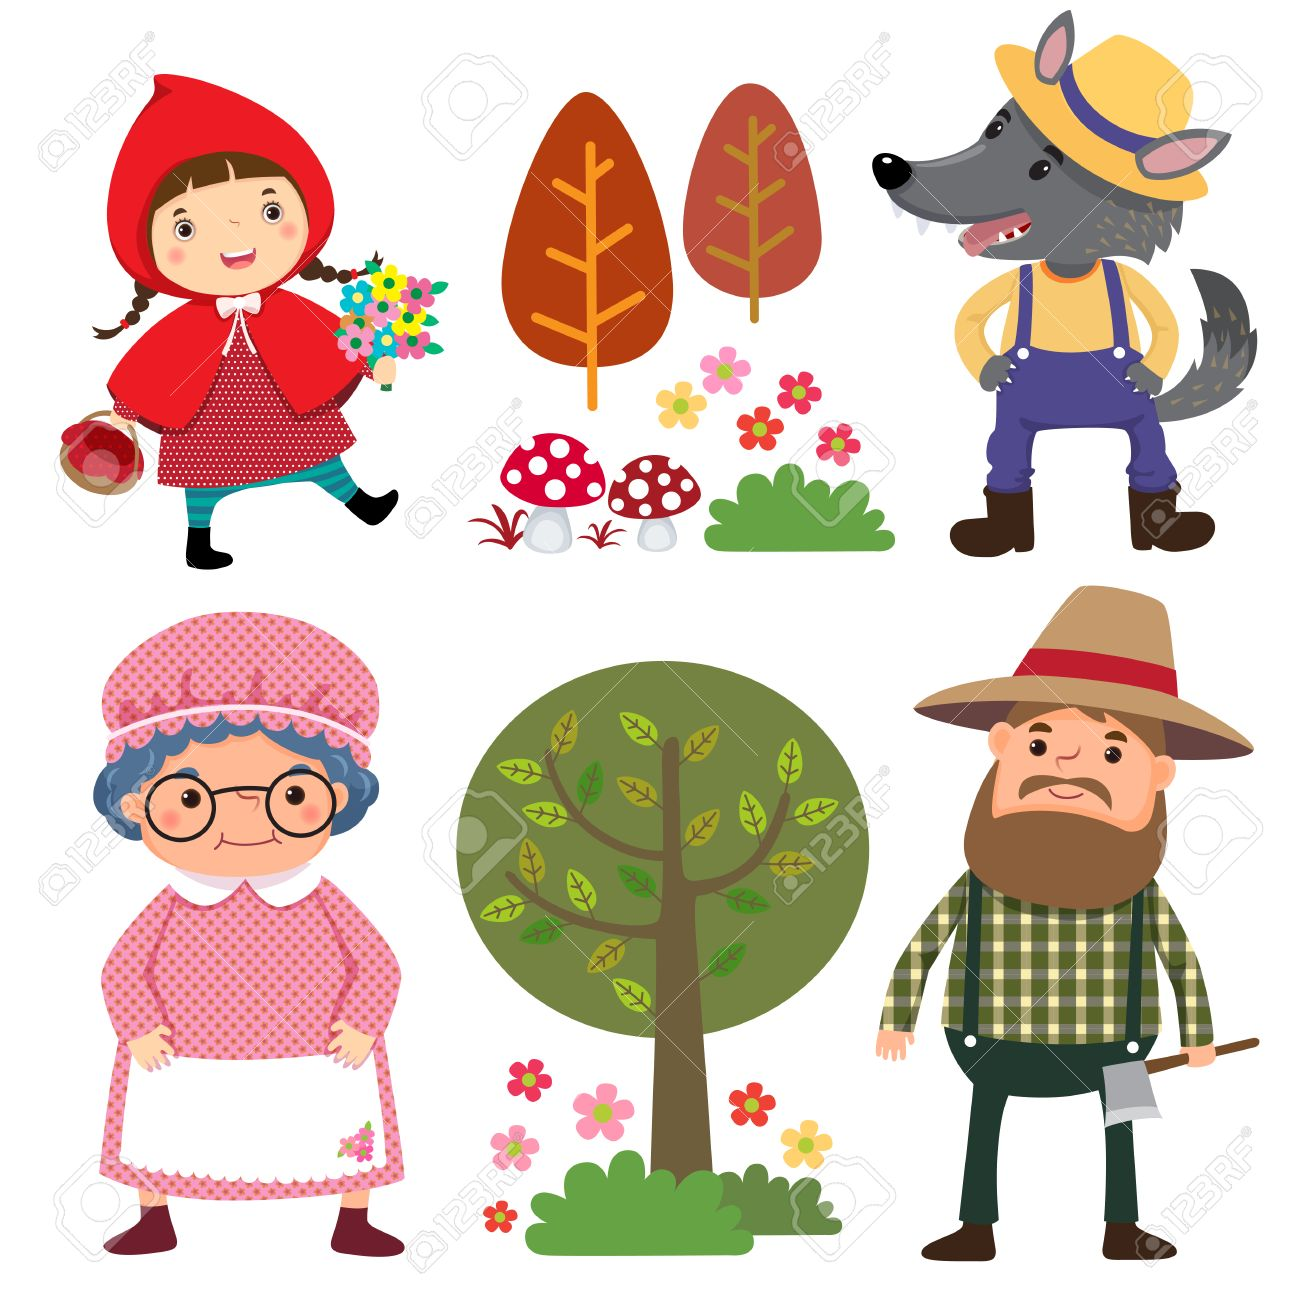 Character Clipart red riding hood